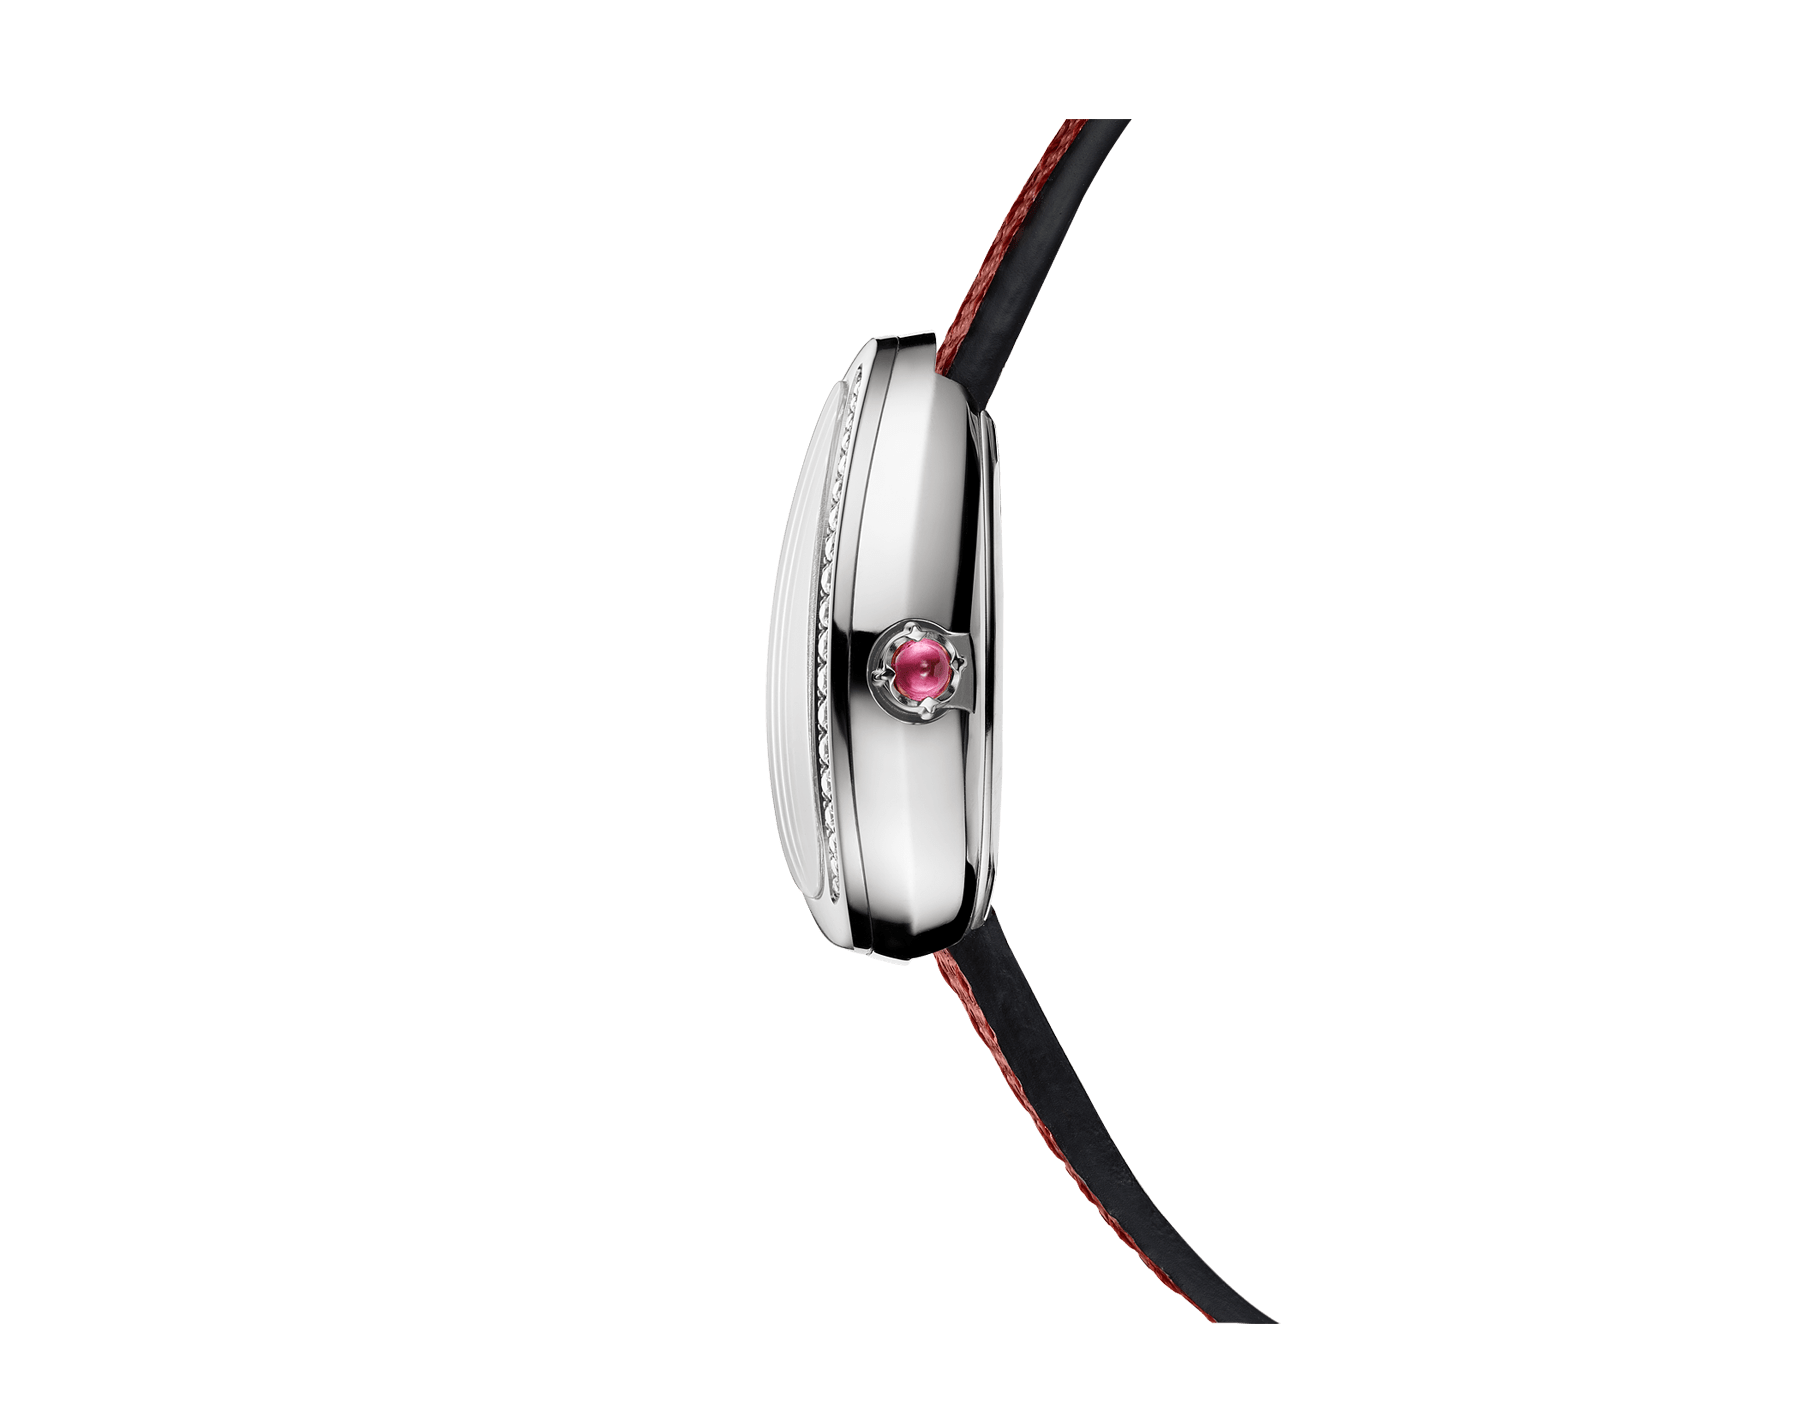 Serpenti watch with stainless steel case set with round brilliant-cut diamonds, white mother-of-pearl dial and interchangeable double spiral bracelet in red karung leather 102920 image 2